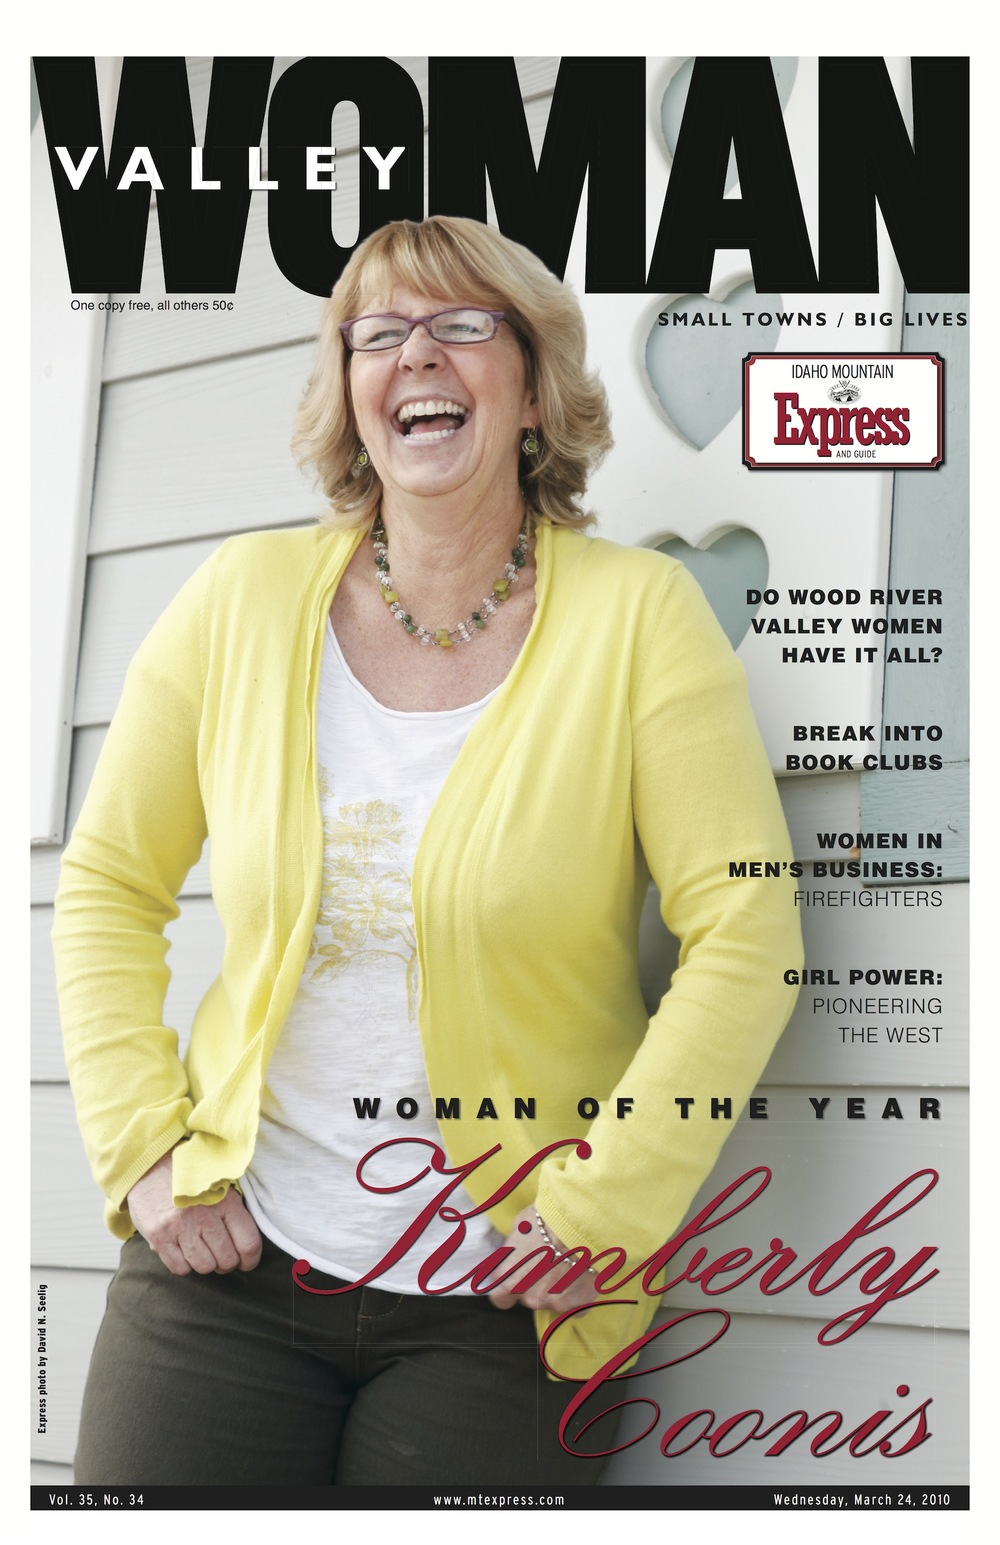 Valley Woman 2010 cover.jpg